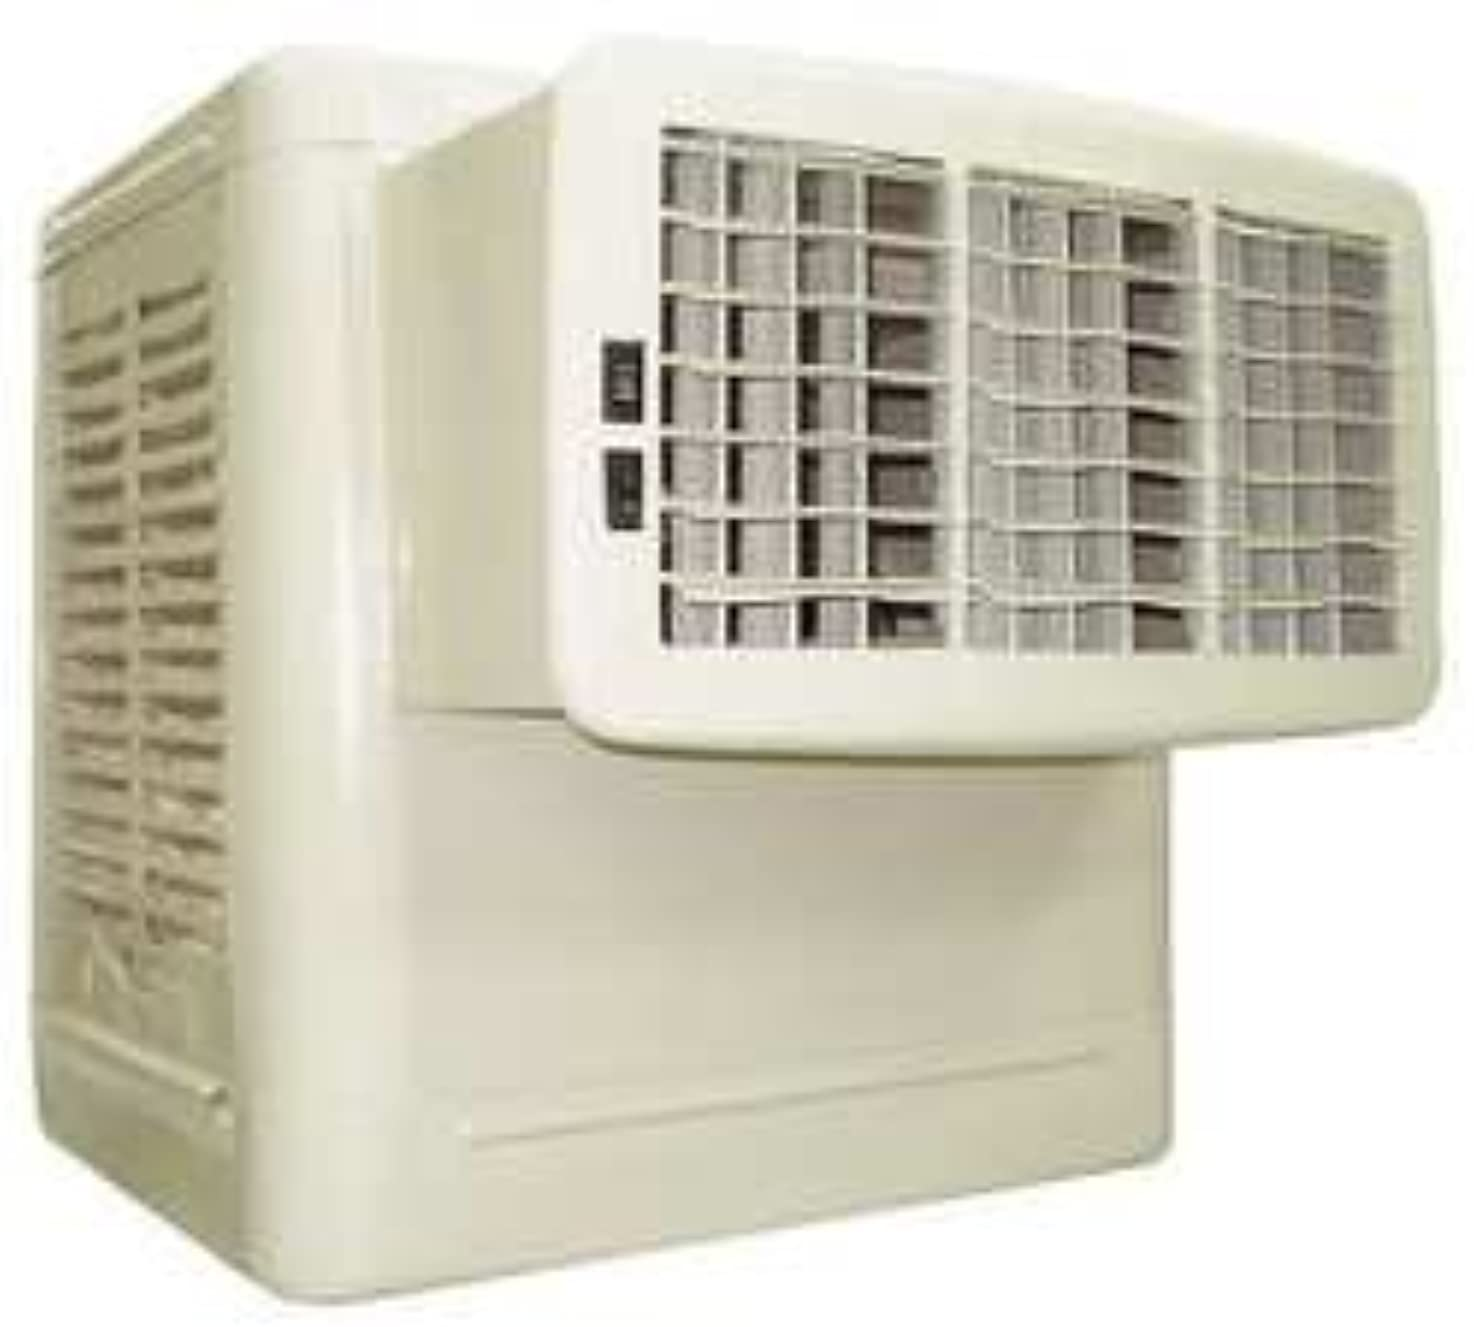 Dayton 4RNN8 Evaporative Cooler, Degrees_Fahrenheit, to Volts, Amps, ( gbnxypaqjpjmu5